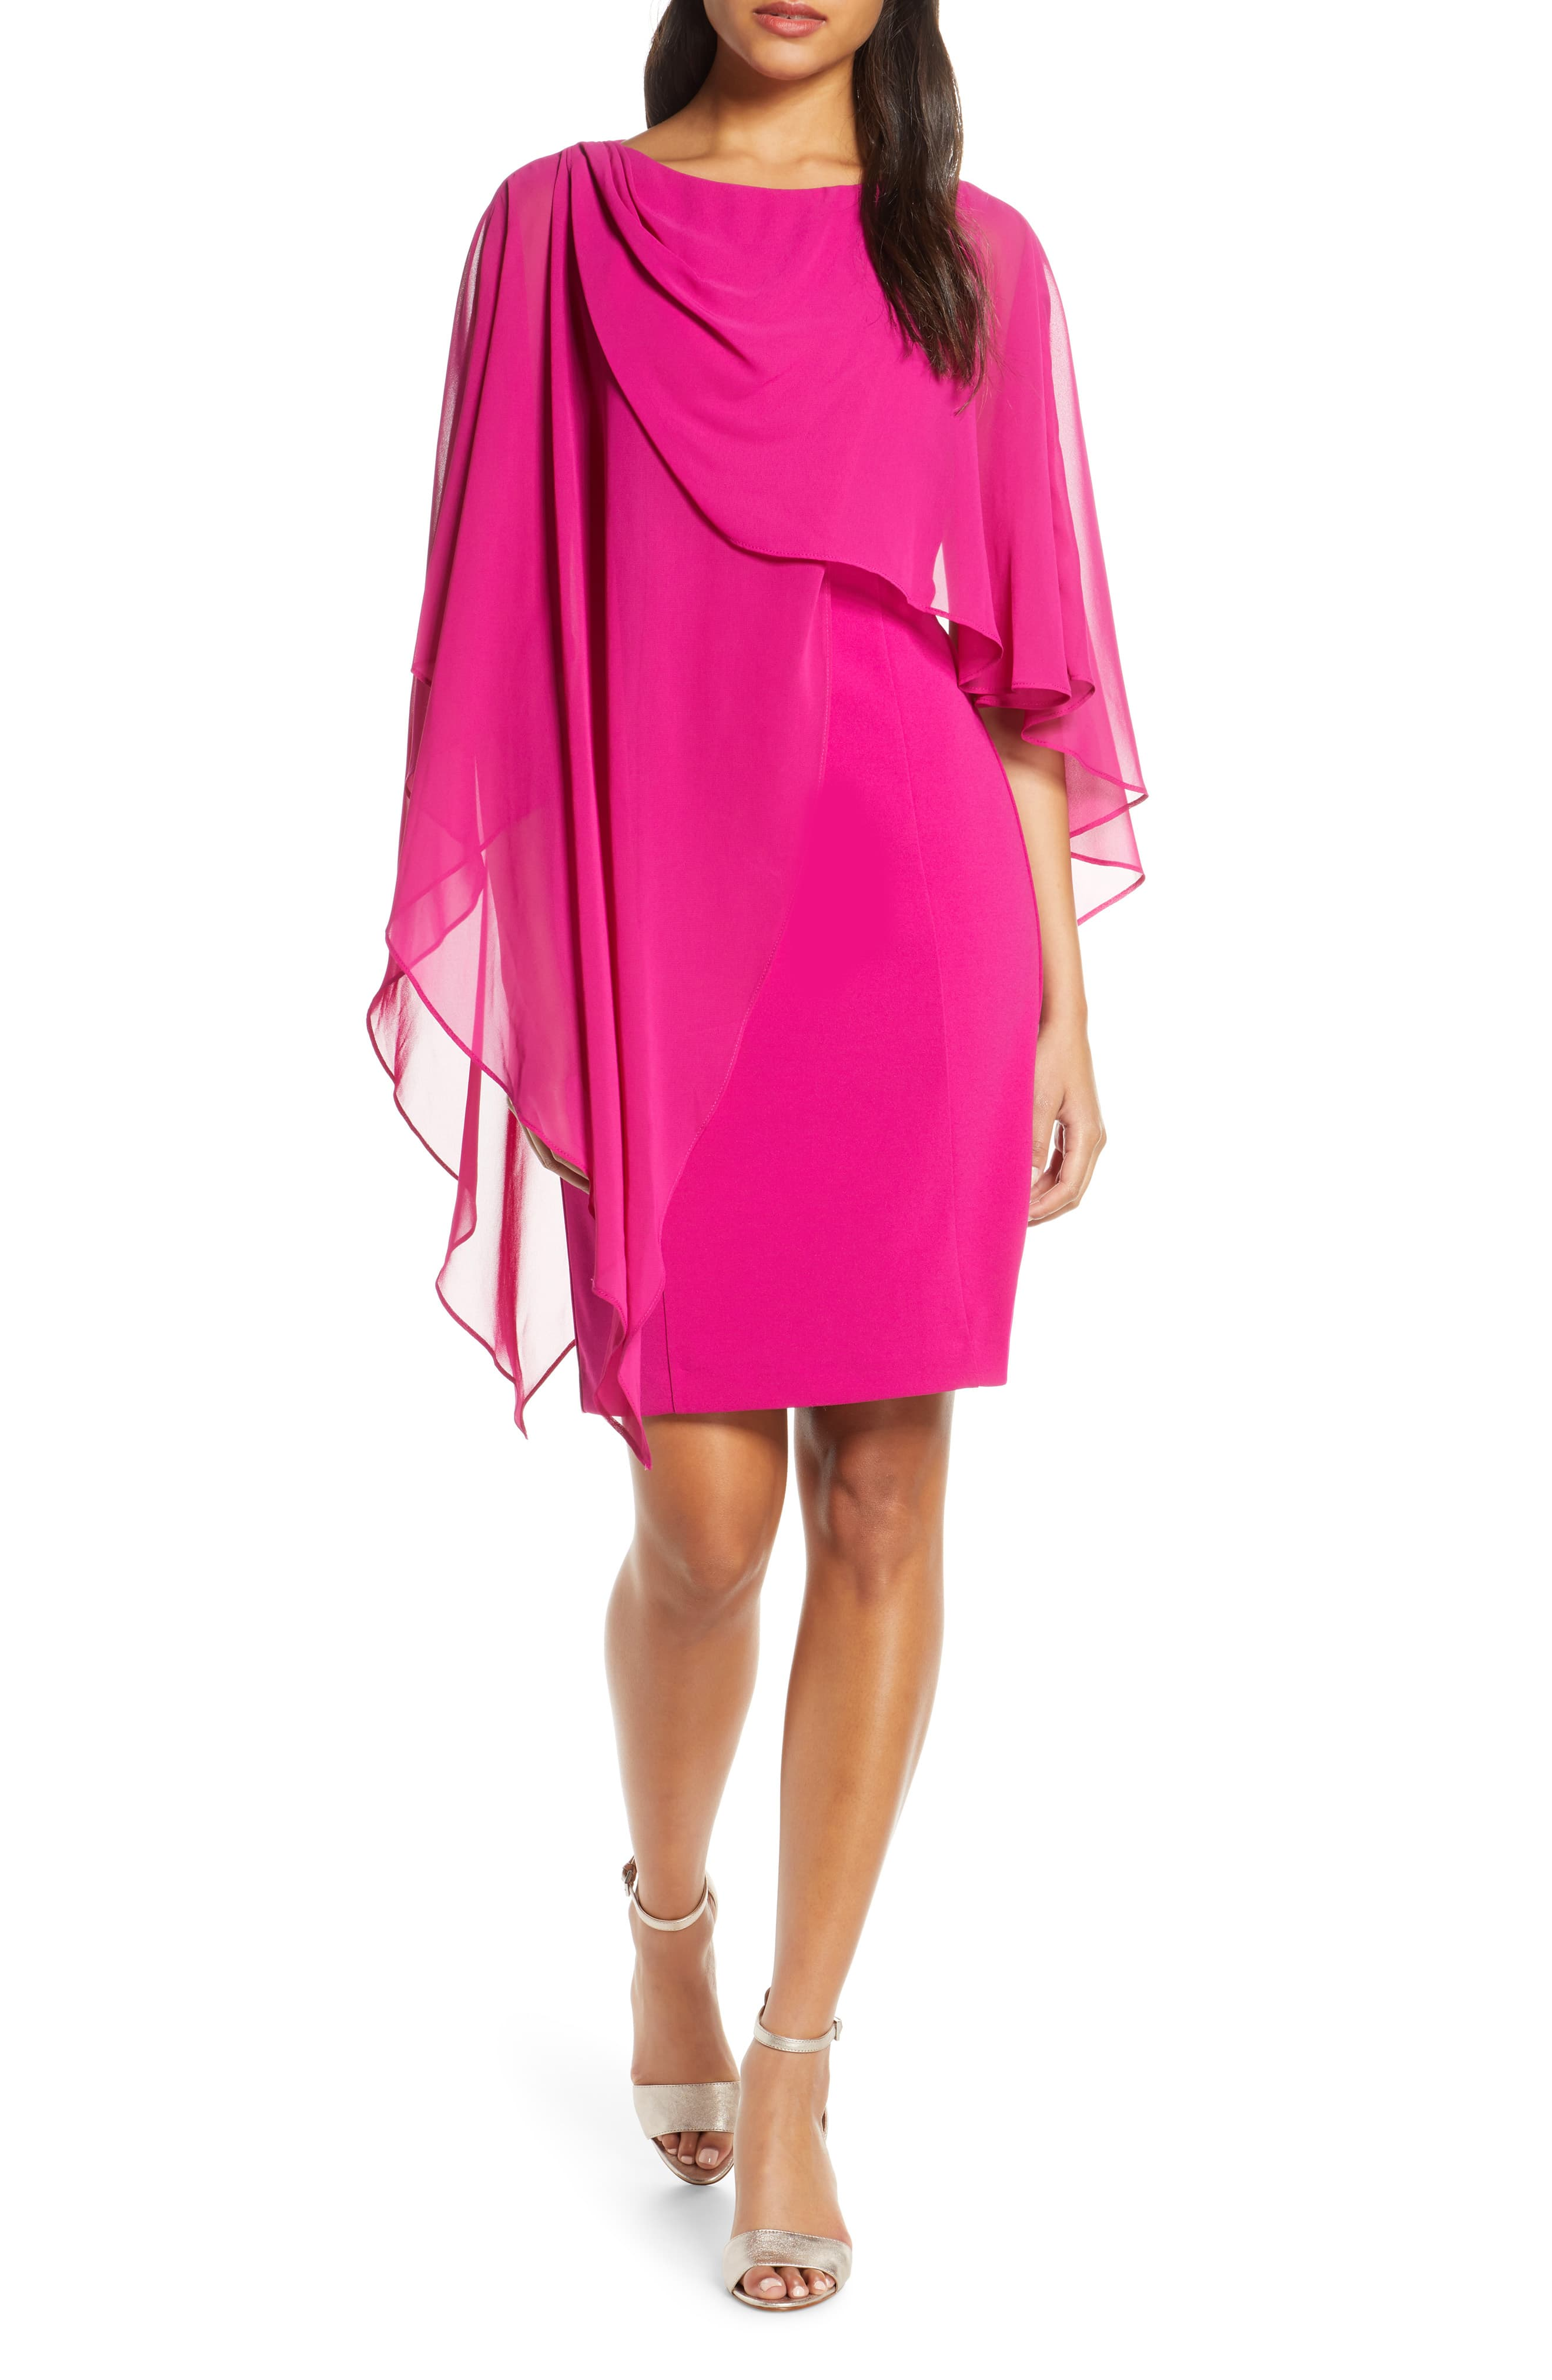 Womens Eliza J Chiffon Cape Cocktail Dress, Size 8 – Pink